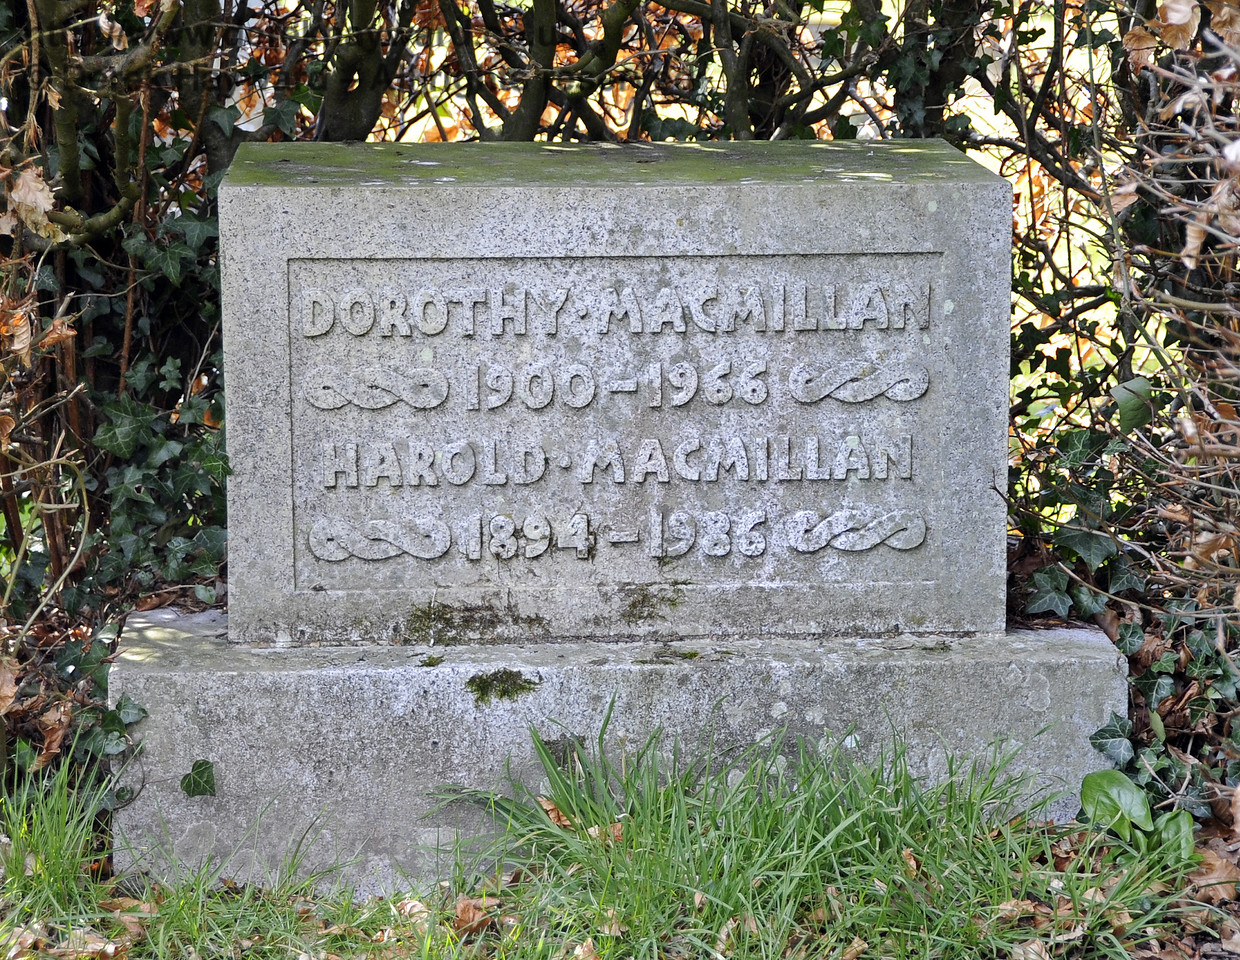 "The Macmillan Family Plot, St Giles Church, Horsted Keynes.  06.04.2013  6608<br /> <br /> ""Dorothy Macmillan<br /> 1900 - 1966<br /> Harold Macmillan<br /> 1894 - 1986""<br /> <br /> This is:<br /> Maurice Harold Macmillan, 1st Earl of Stockton, OM, PC, FRS, Conservative Prime Minister of the United Kingdom from 10 January 1957 to 18 October 1963<br /> and his wife:<br /> Lady Dorothy Macmillan GBE (formerly) Cavendish, the daughter of the 9th Duke of Devonshire."